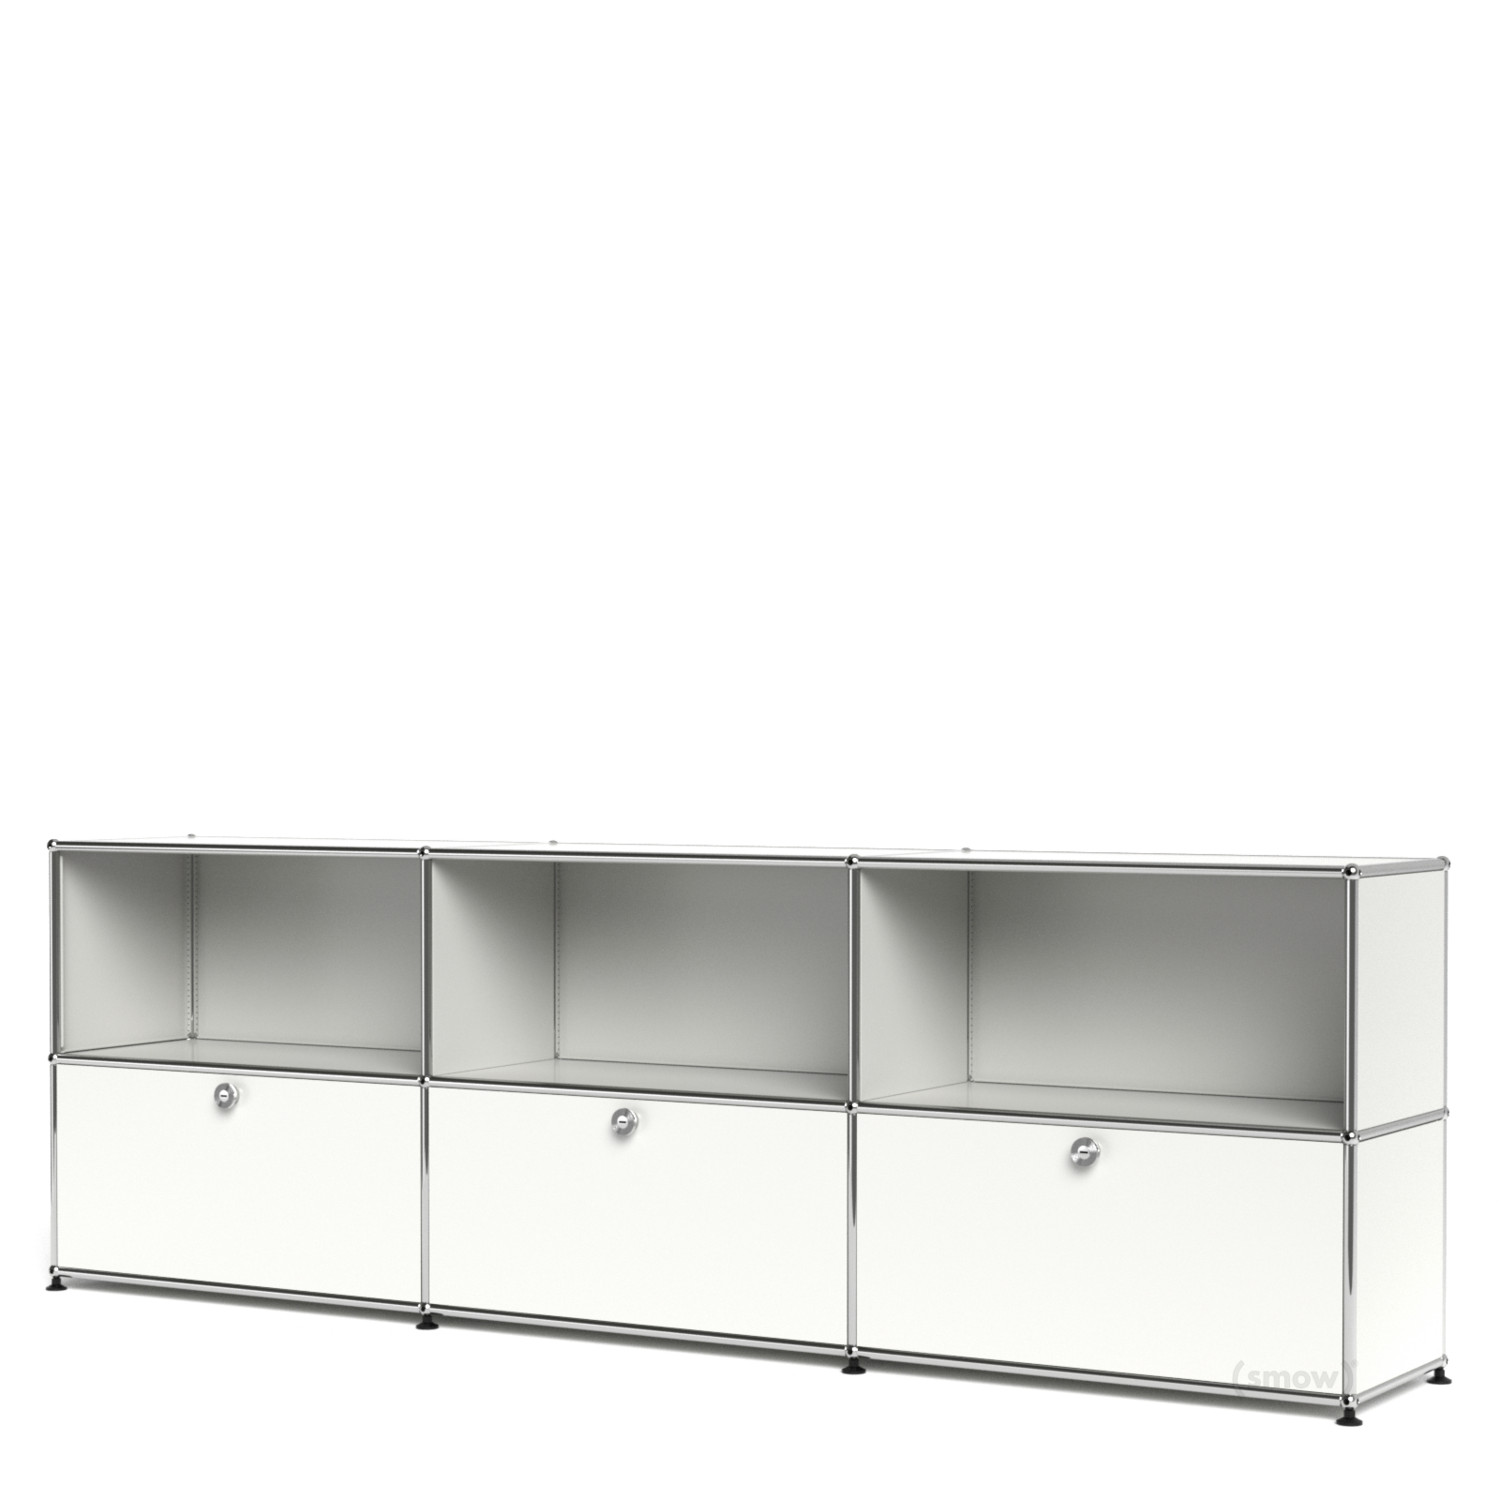 usm haller sideboard xl customisable by fritz haller. Black Bedroom Furniture Sets. Home Design Ideas